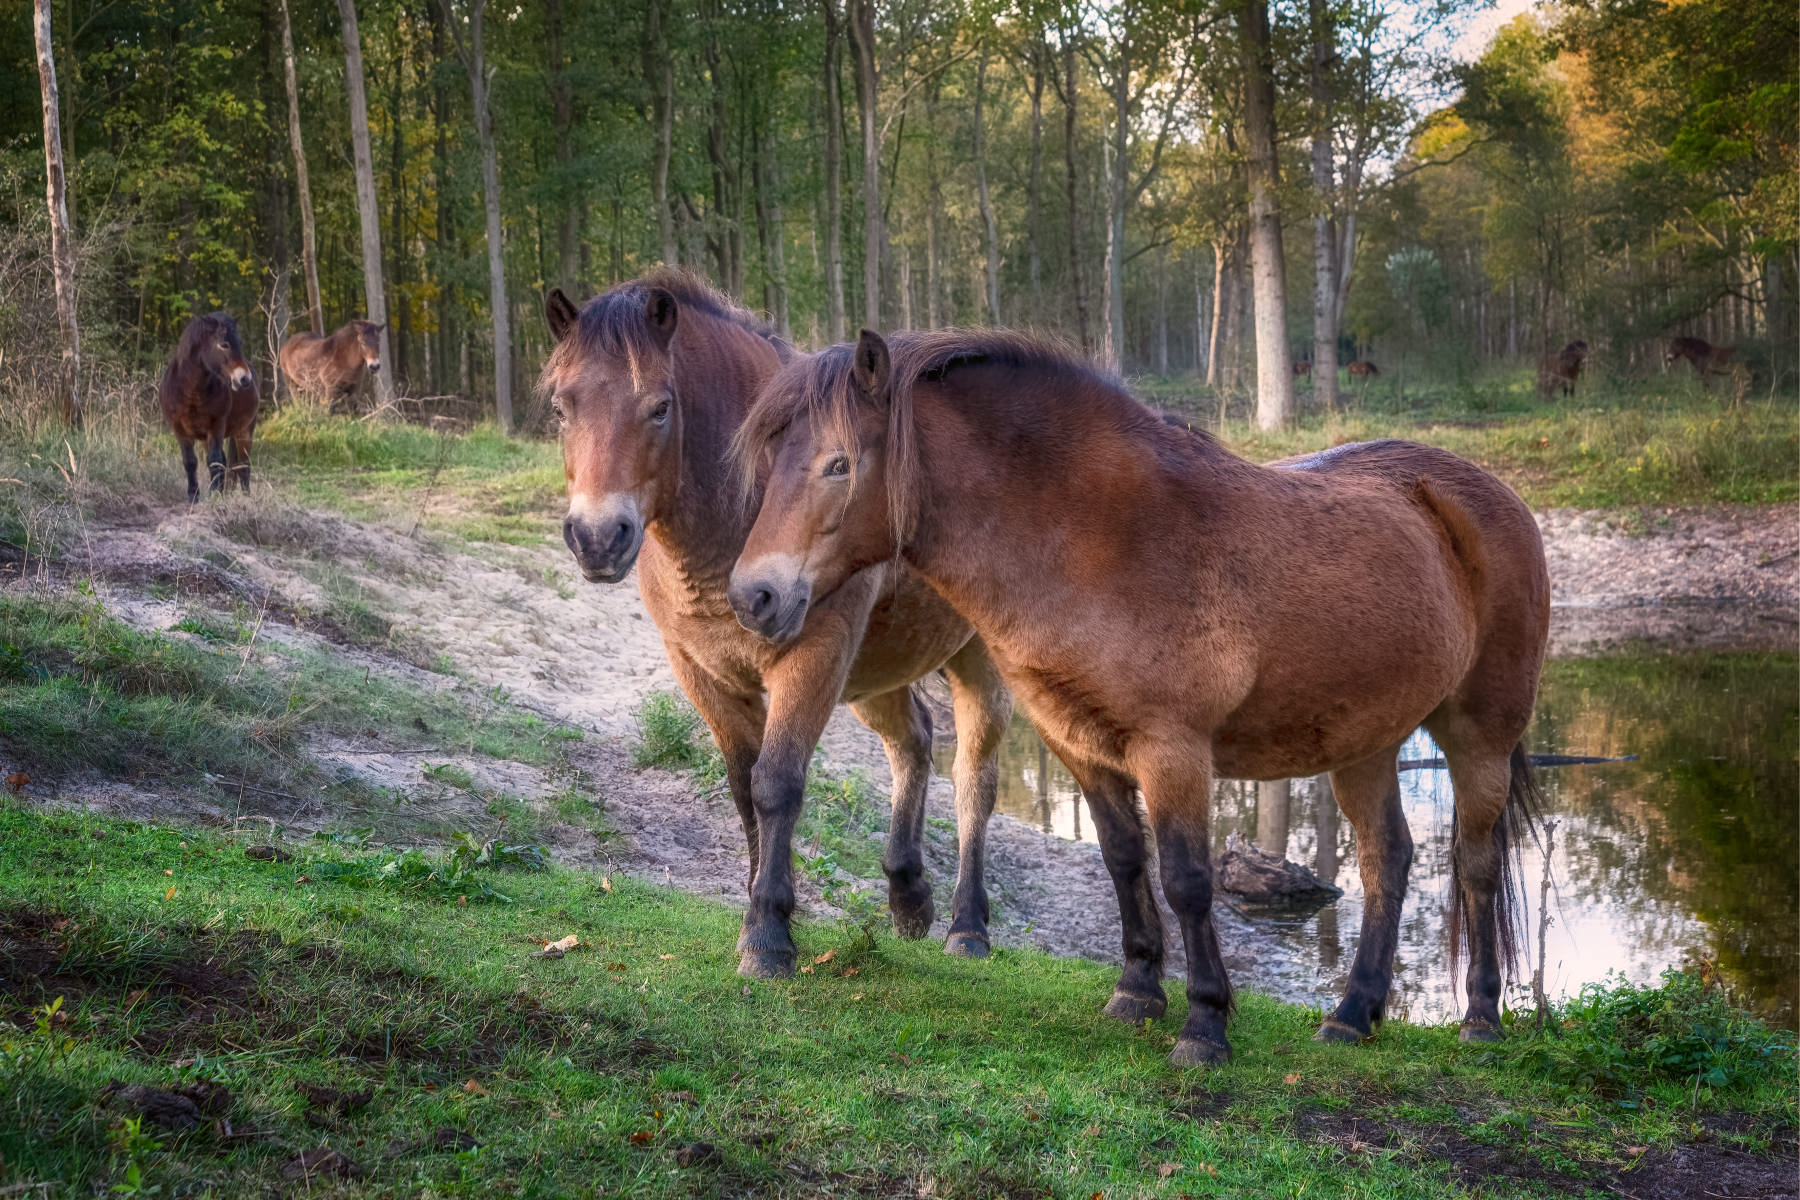 intimate portrait of horses at a pond